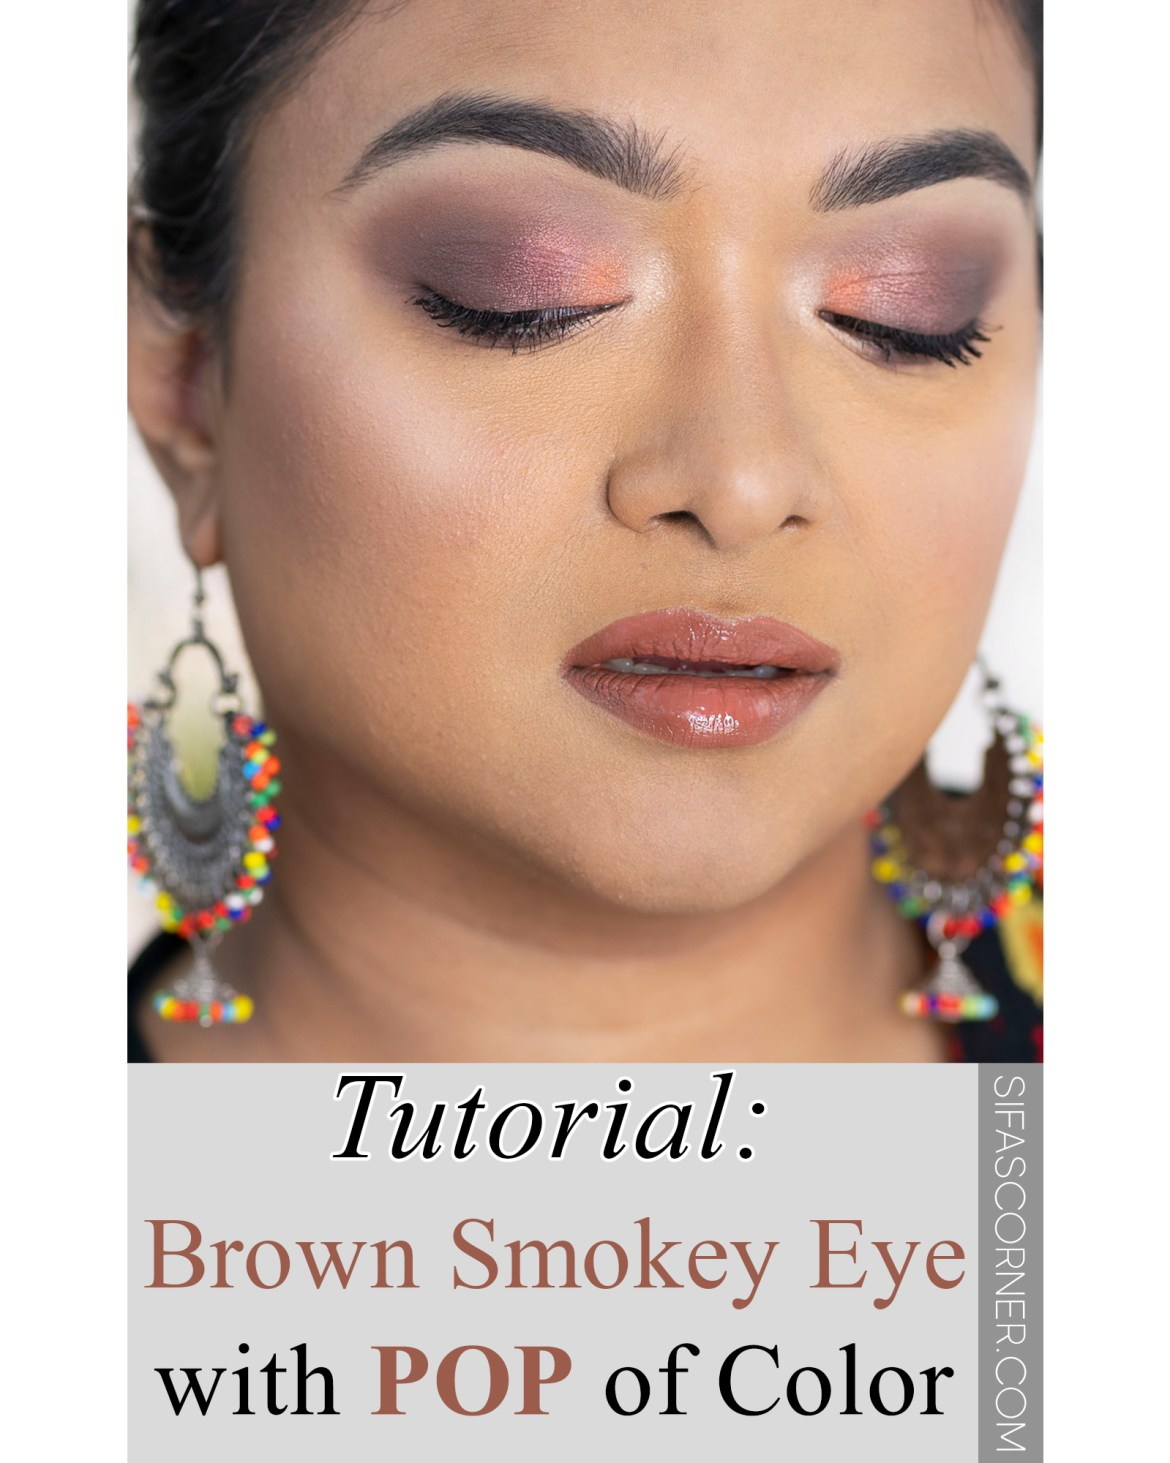 Brown Smokey Eye with Pop of Color